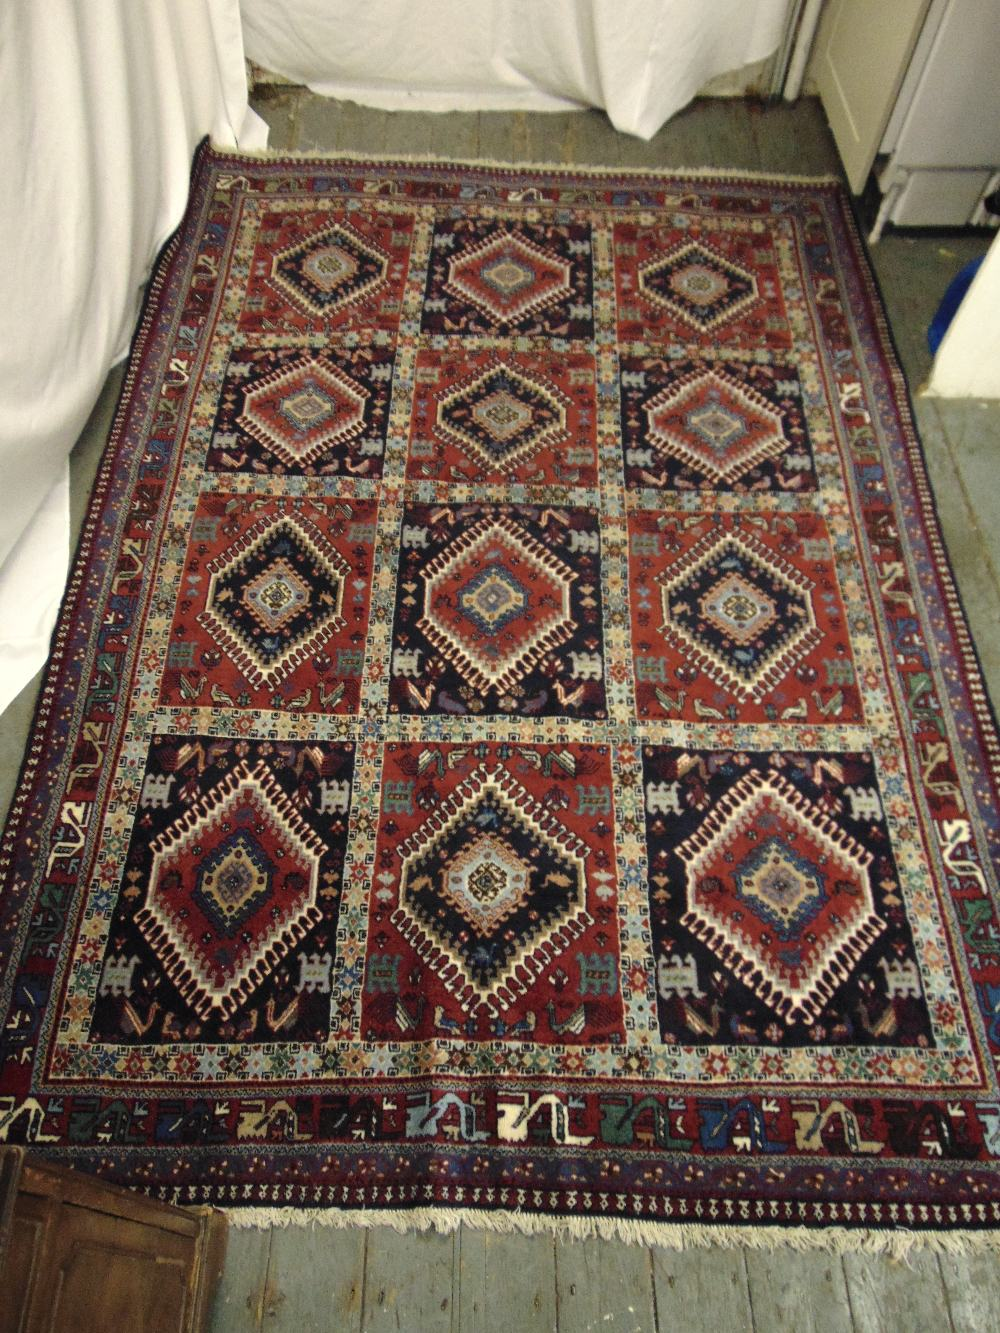 Lot 32 - A Persian Yalameh carpet, predominately brown, red and blue, formed as rows of diamond medallions